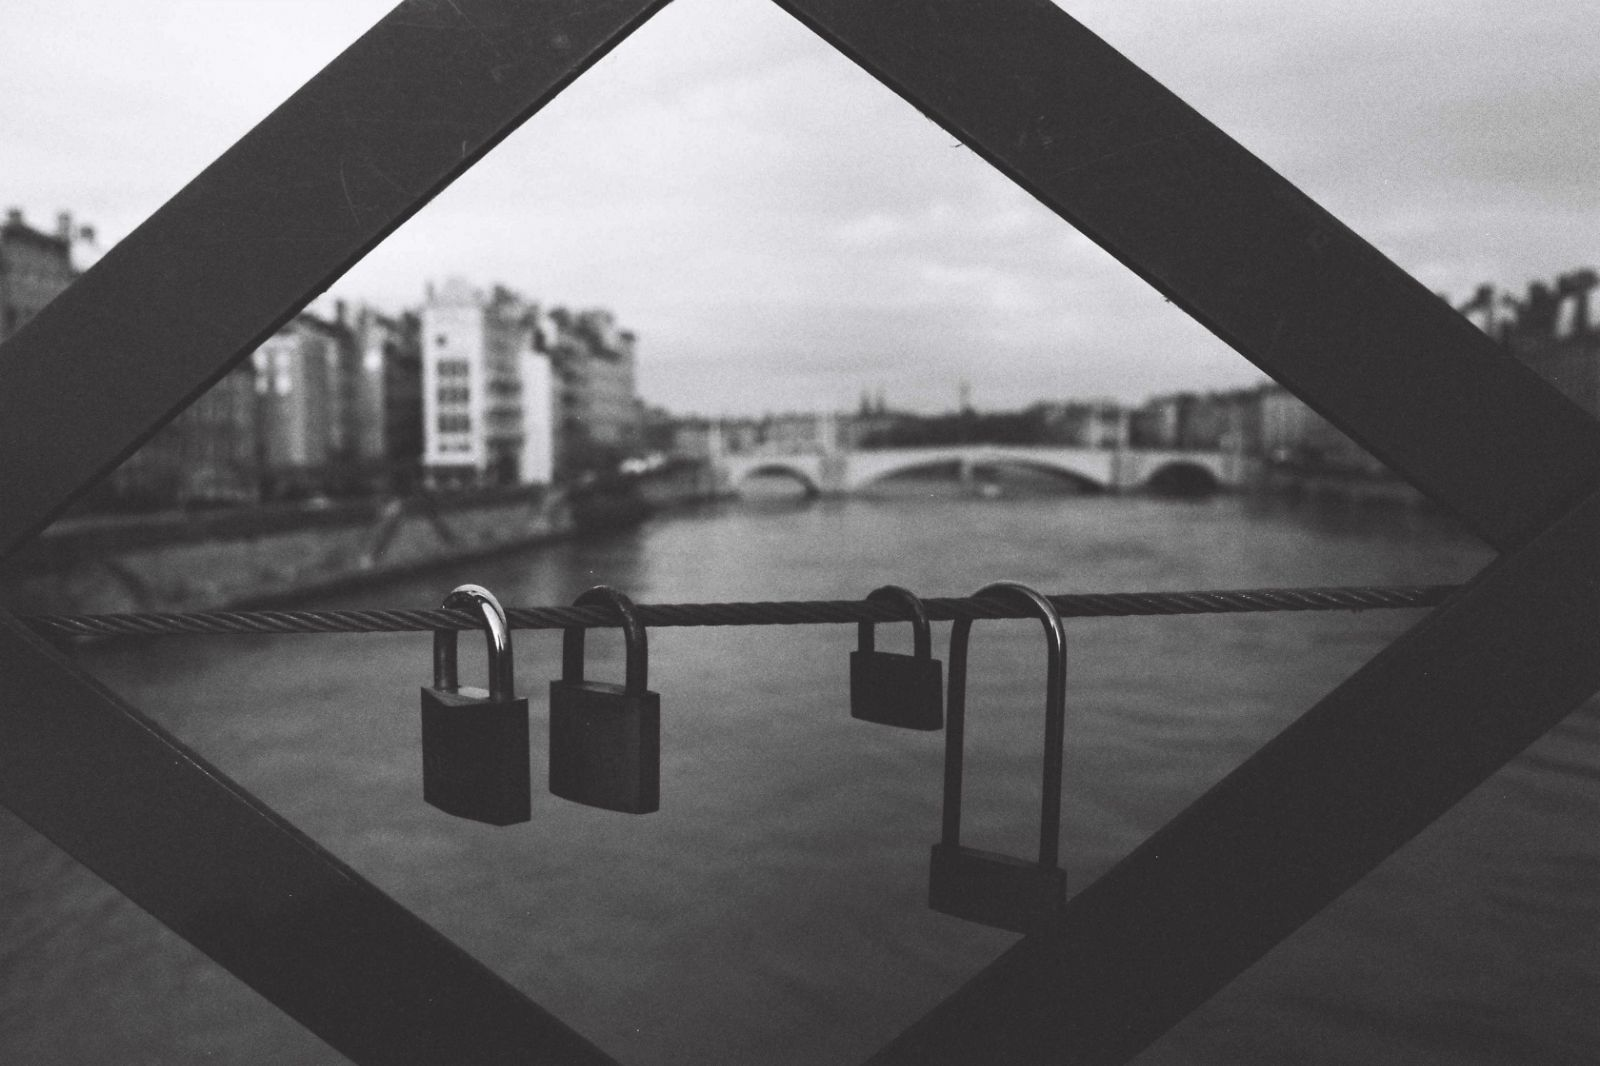 Four padlocks hanged on a bridge cable along the Saone river in Lyon, December 2014 | Credit: Ryan Burton